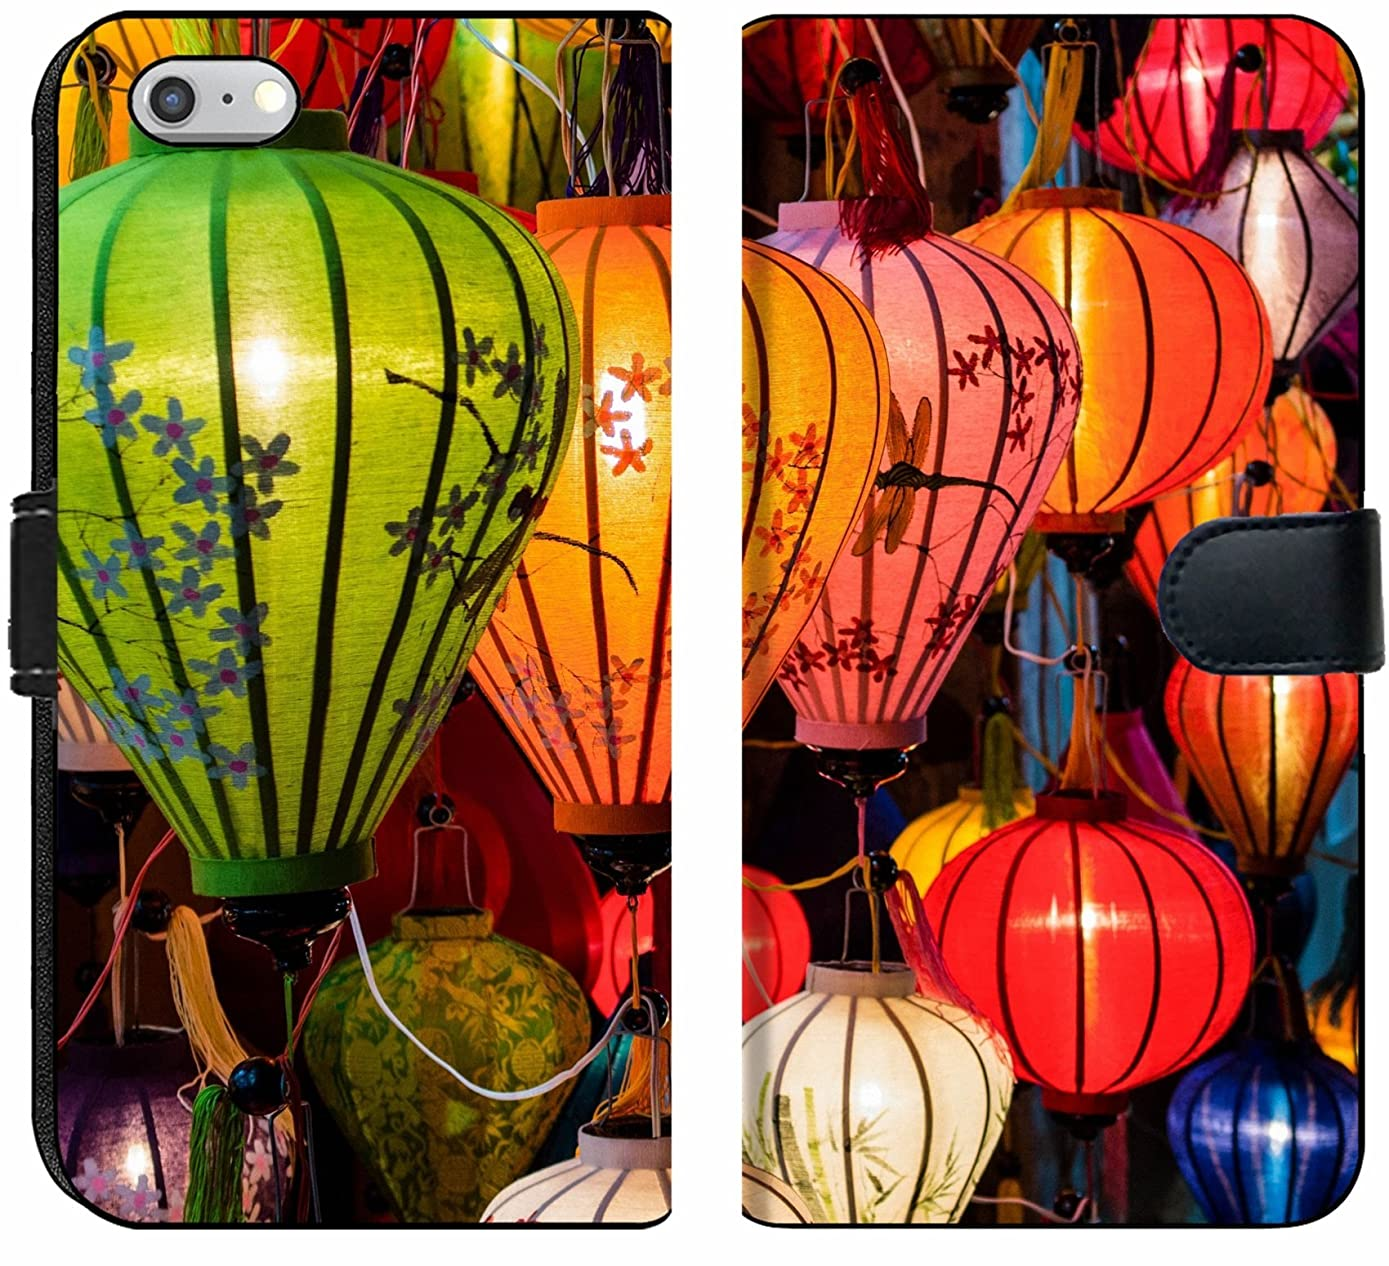 Apple iPhone 6 and iPhone 6s Flip Fabric Wallet Case Image ID: 31089698 Traditional Lamps in Old Town Hoi an Central Vietnam